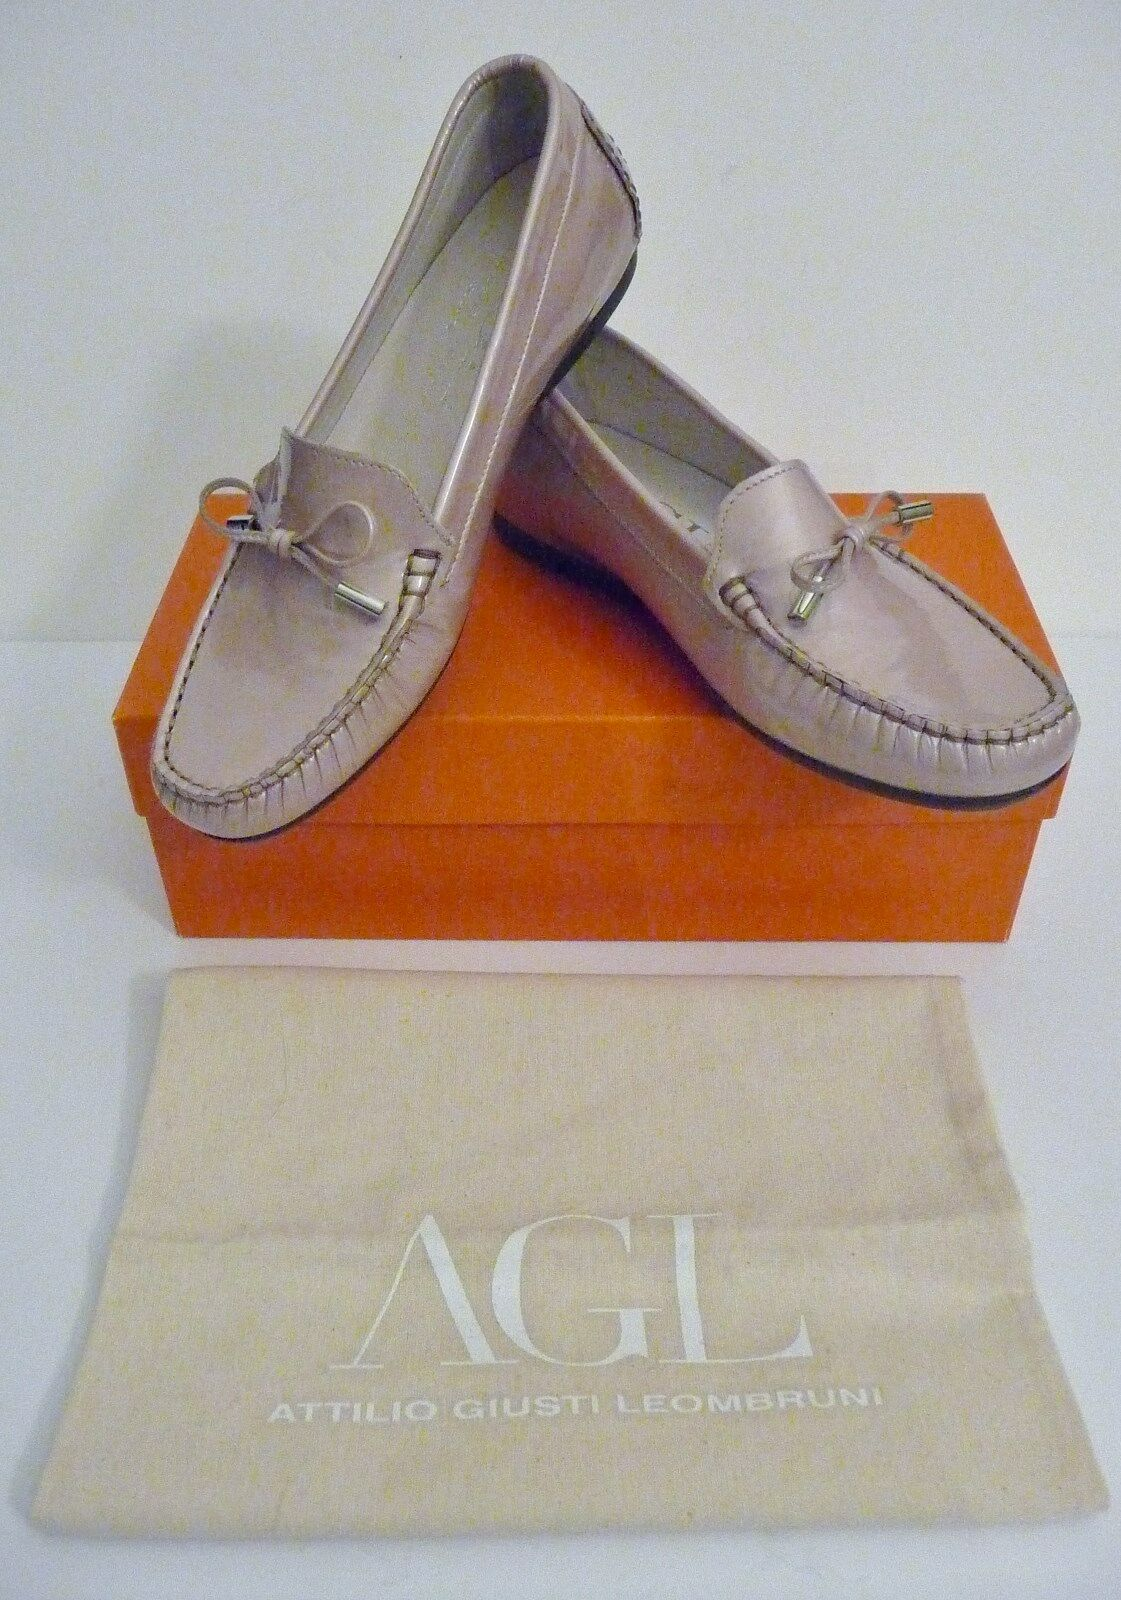 AGL NIB Beige Patent Leather Bow Driving Loafers Size 38.5 8 8.5 B Retail $298